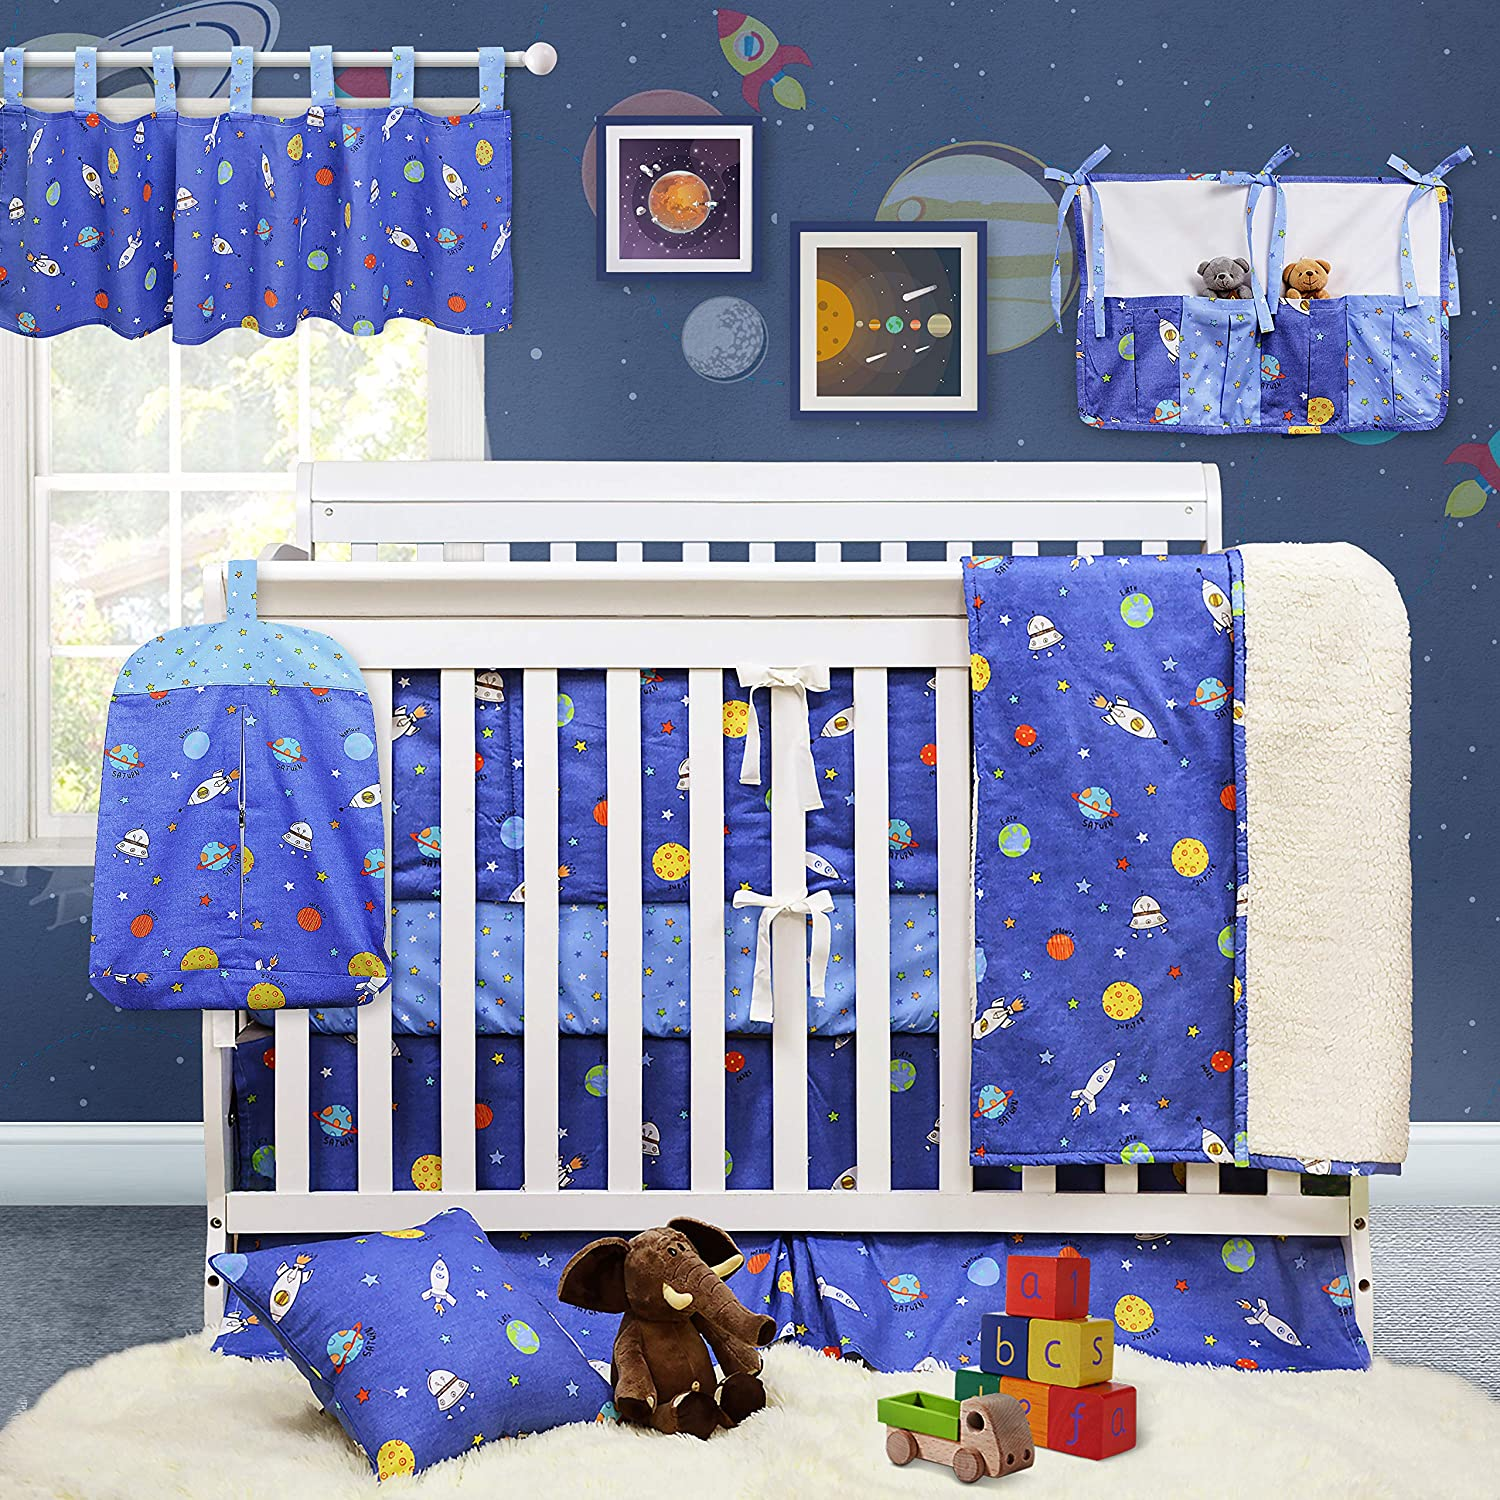 Brandream Crib Bedding Sets for Boys Outer Space Galaxy Nursery Bedding Blue Baby Boys Bedding with Bumper Pads, 100% Hypoallergenic Soft Cotton, 11 Pieces